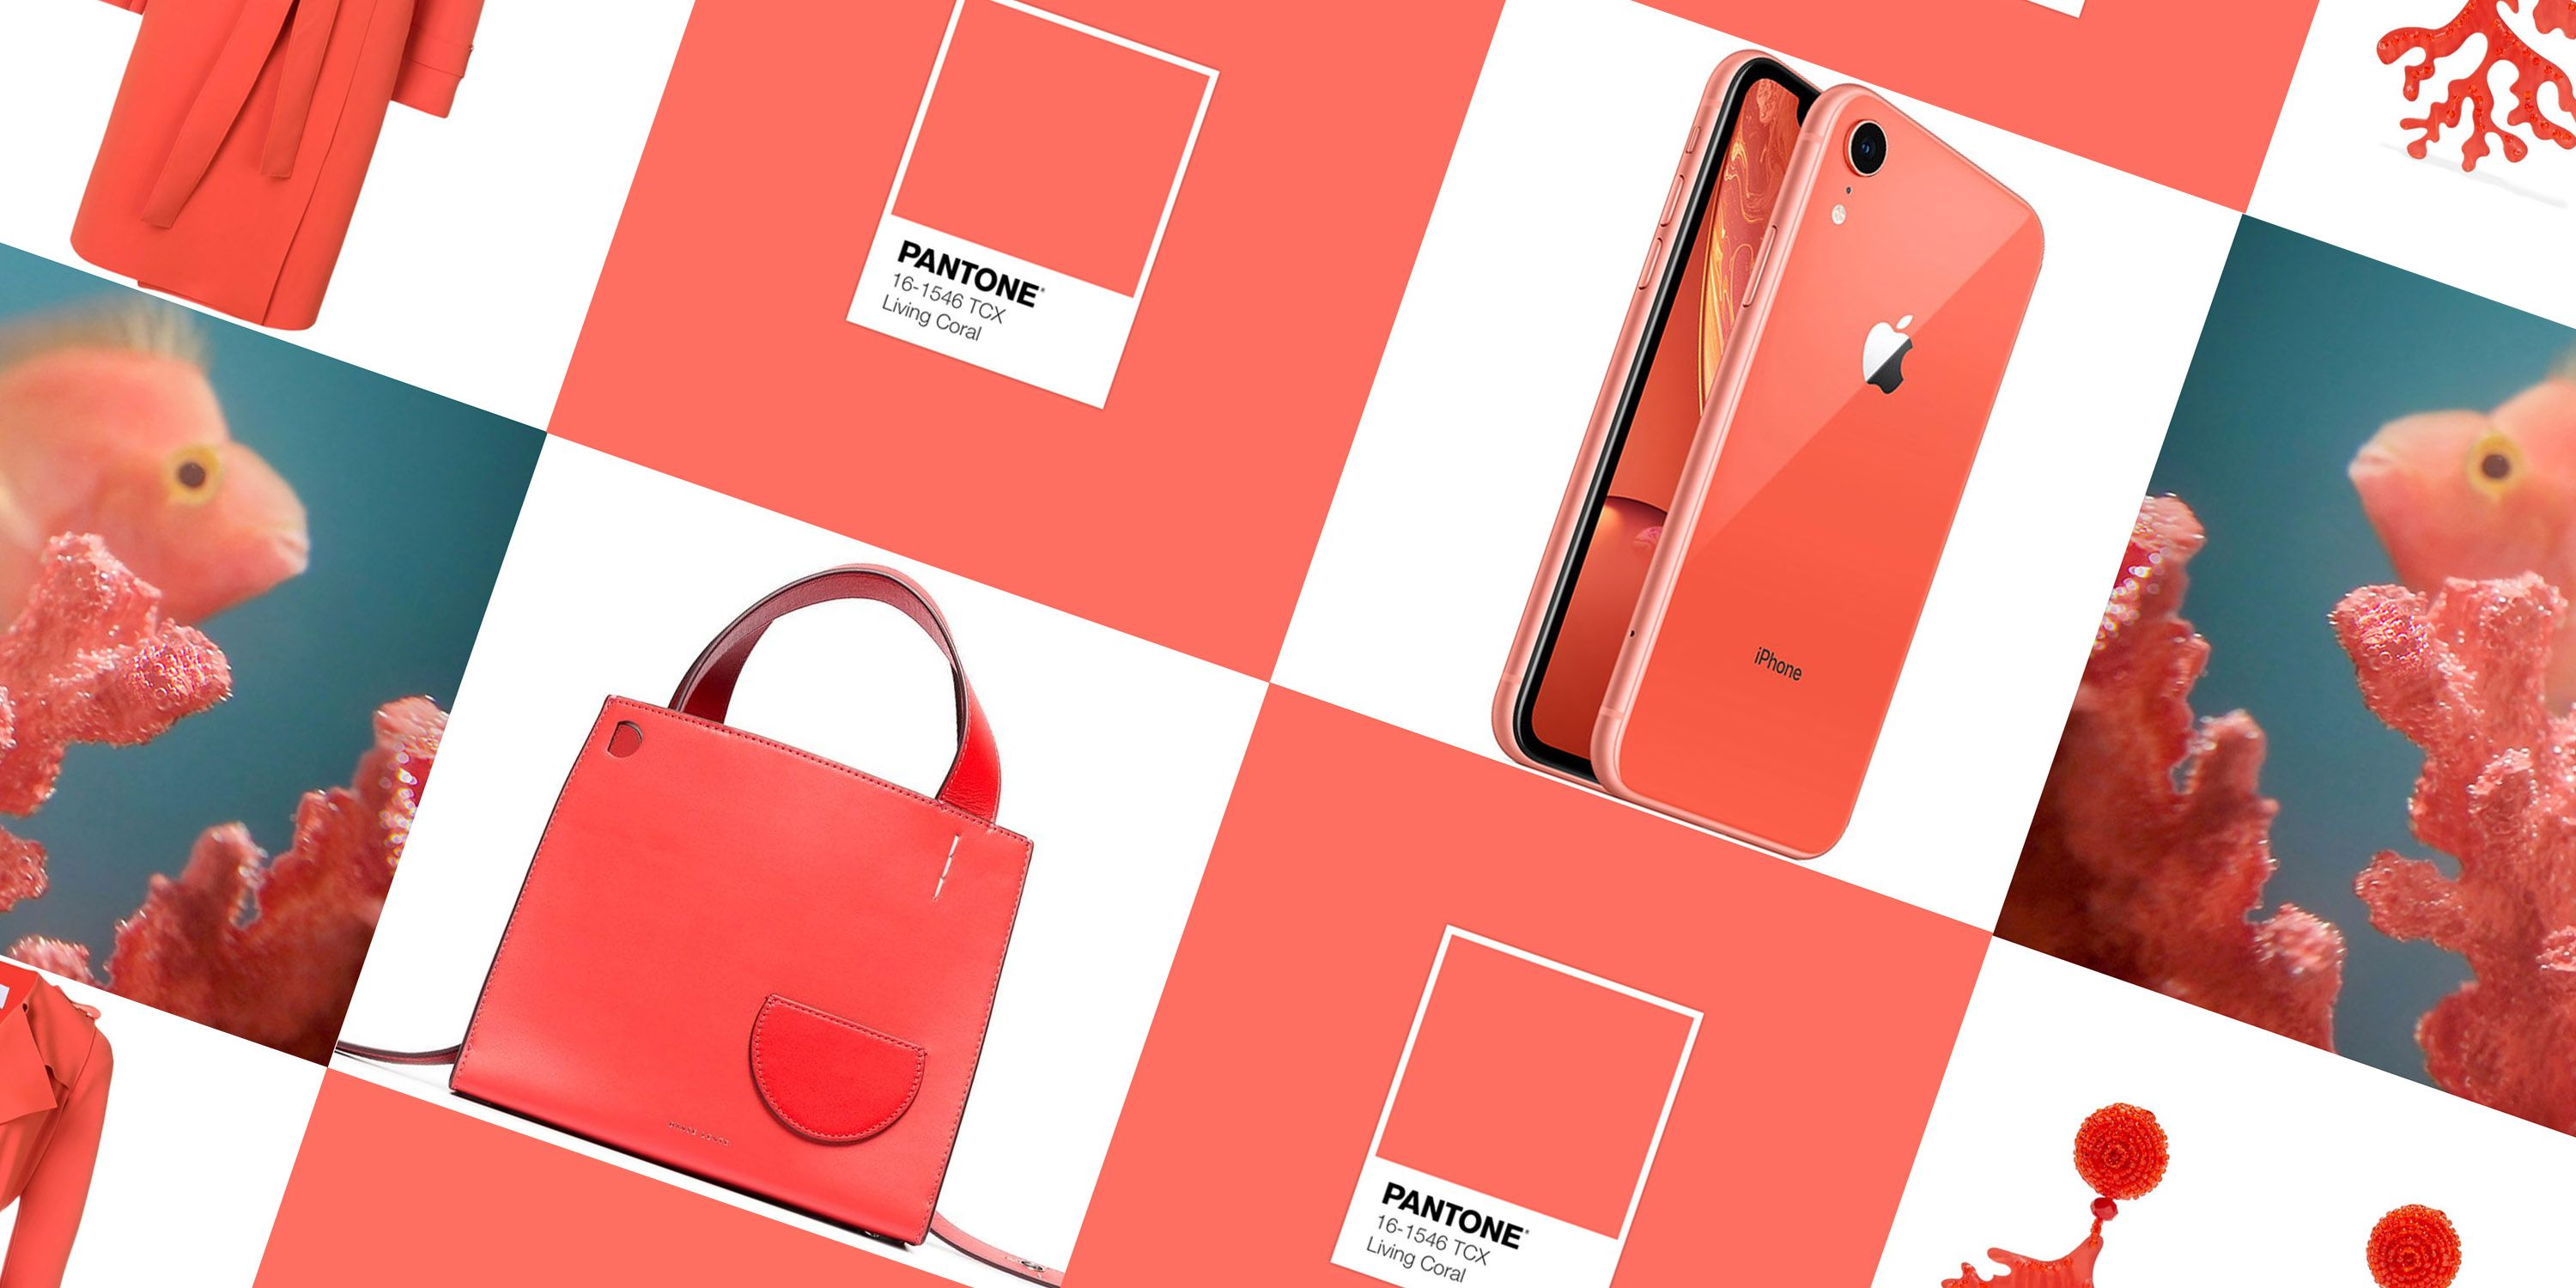 Pantone Announces Living Coral as 2019 Color of the Year